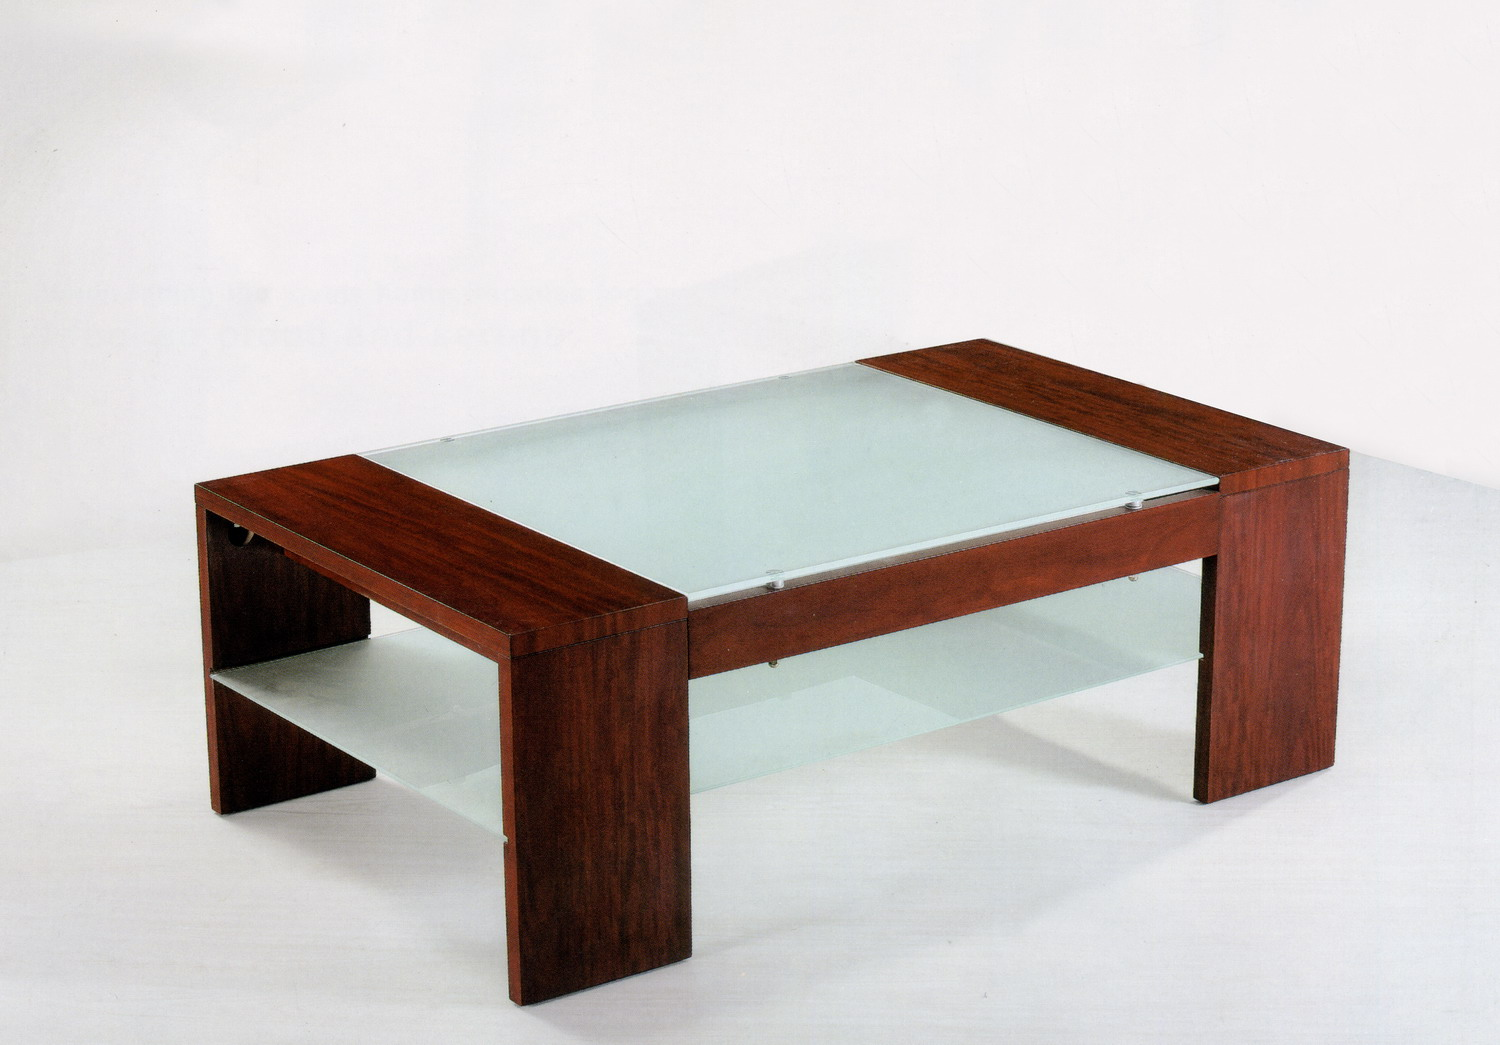 Glass Wood Coffee Table Tables Top Serves As A Dinner For A Family Of Two Or Three It Is A Simple (View 6 of 10)